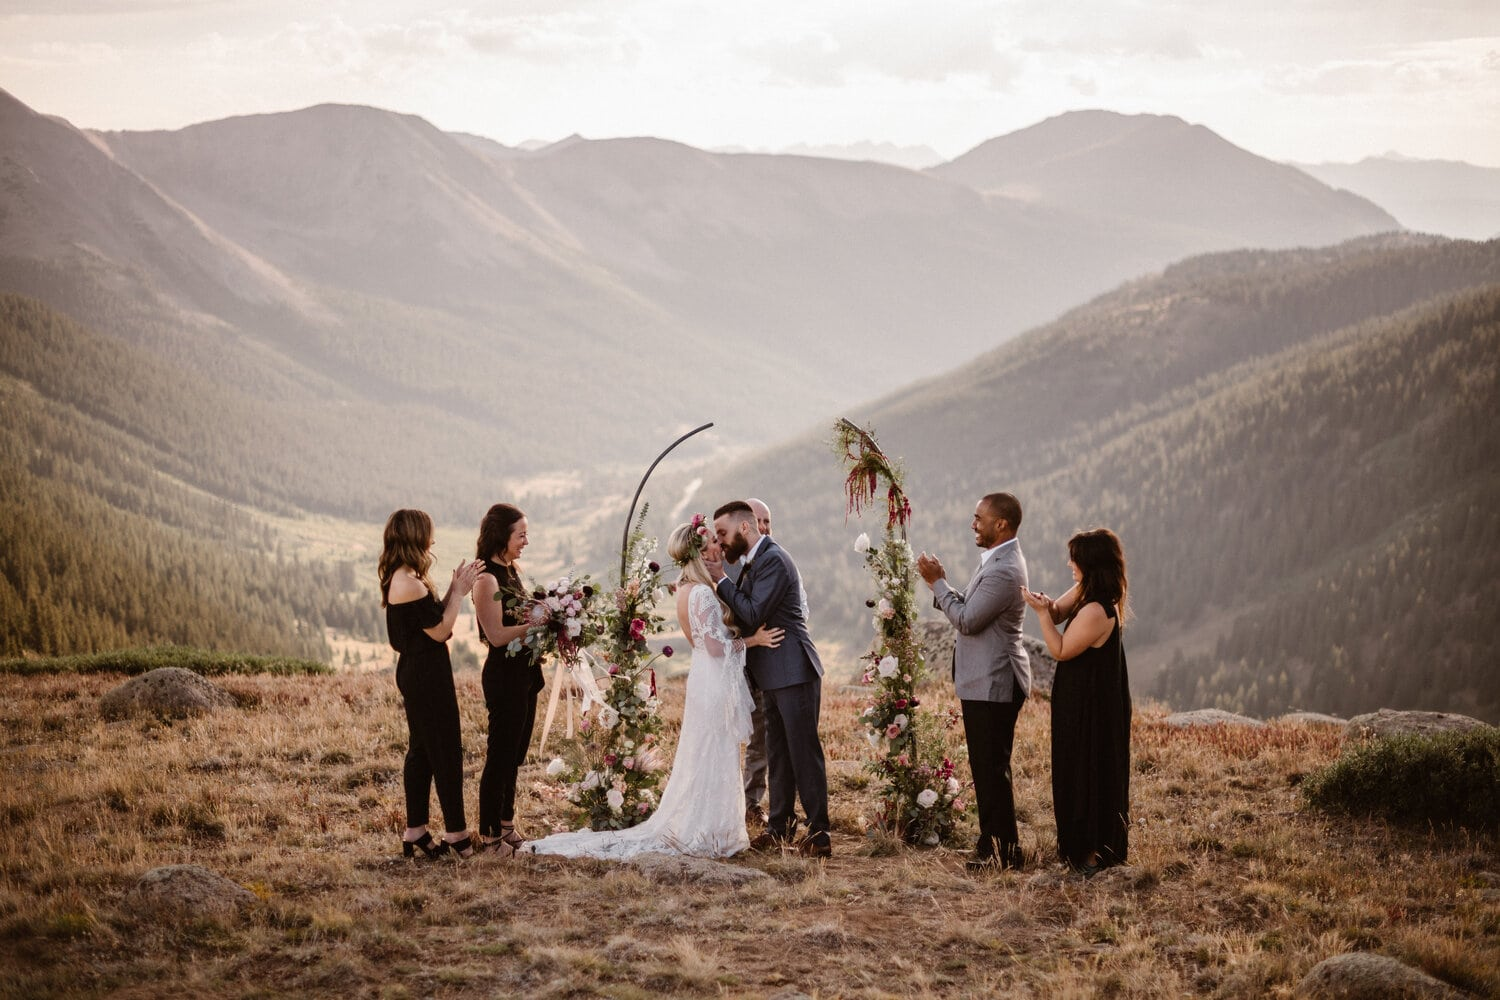 Bride and groom kissing after their elopement ceremony with friends and family looking on.